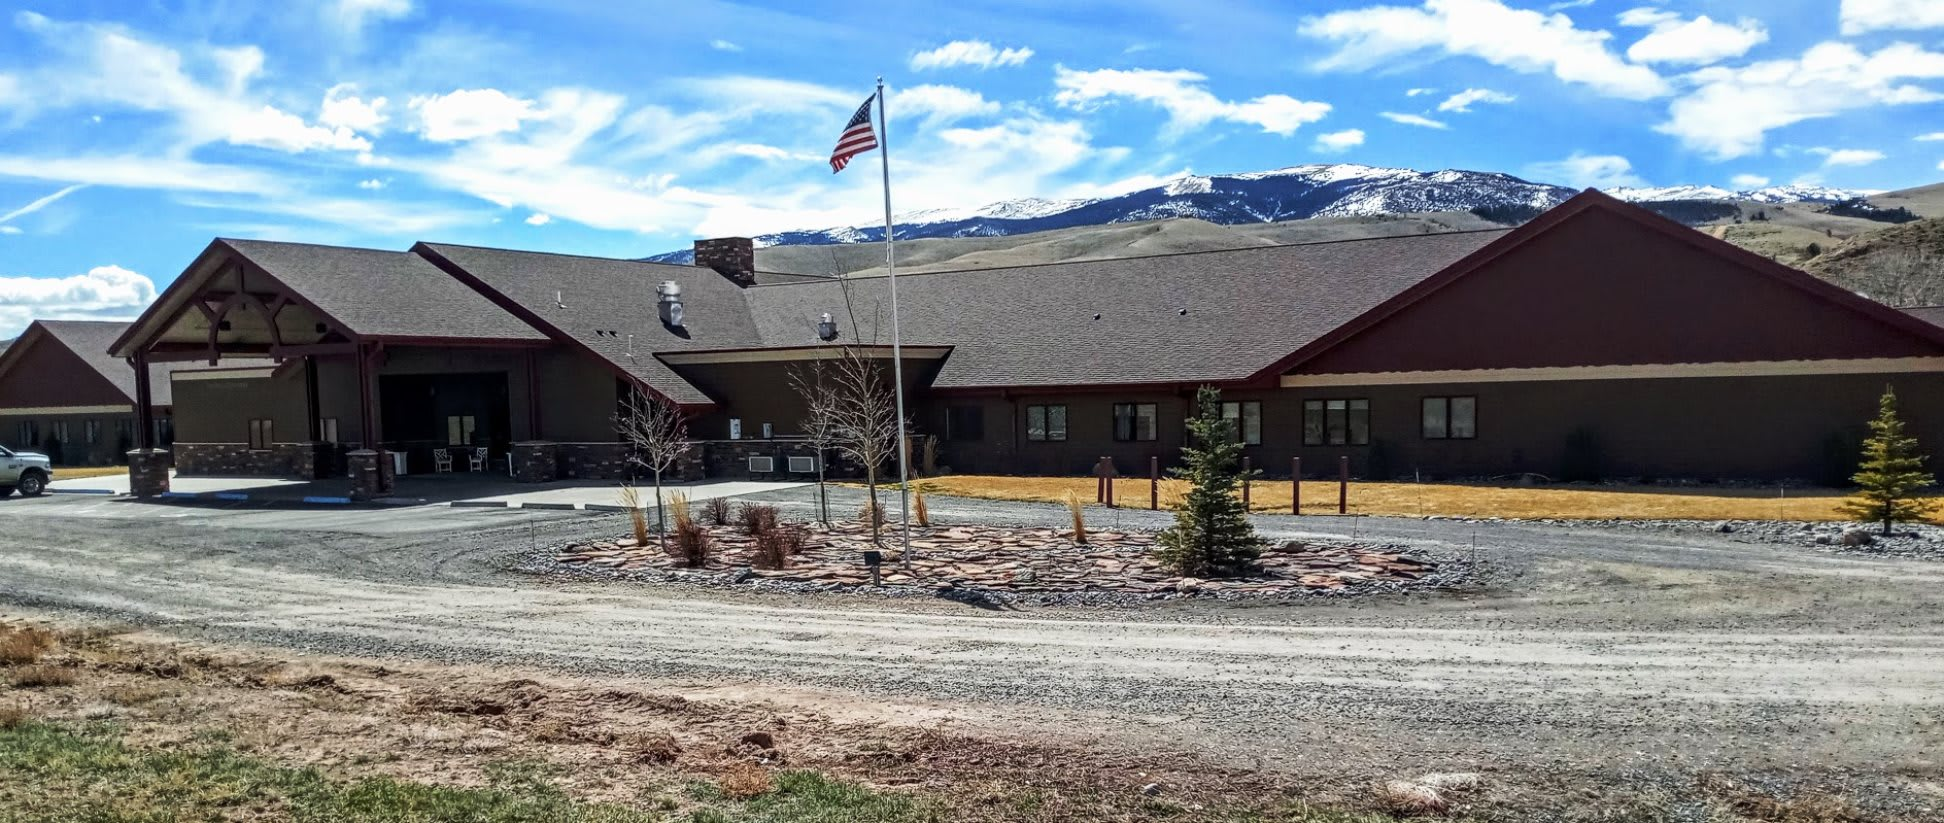 Photo 1 of Warm Valley Lodge